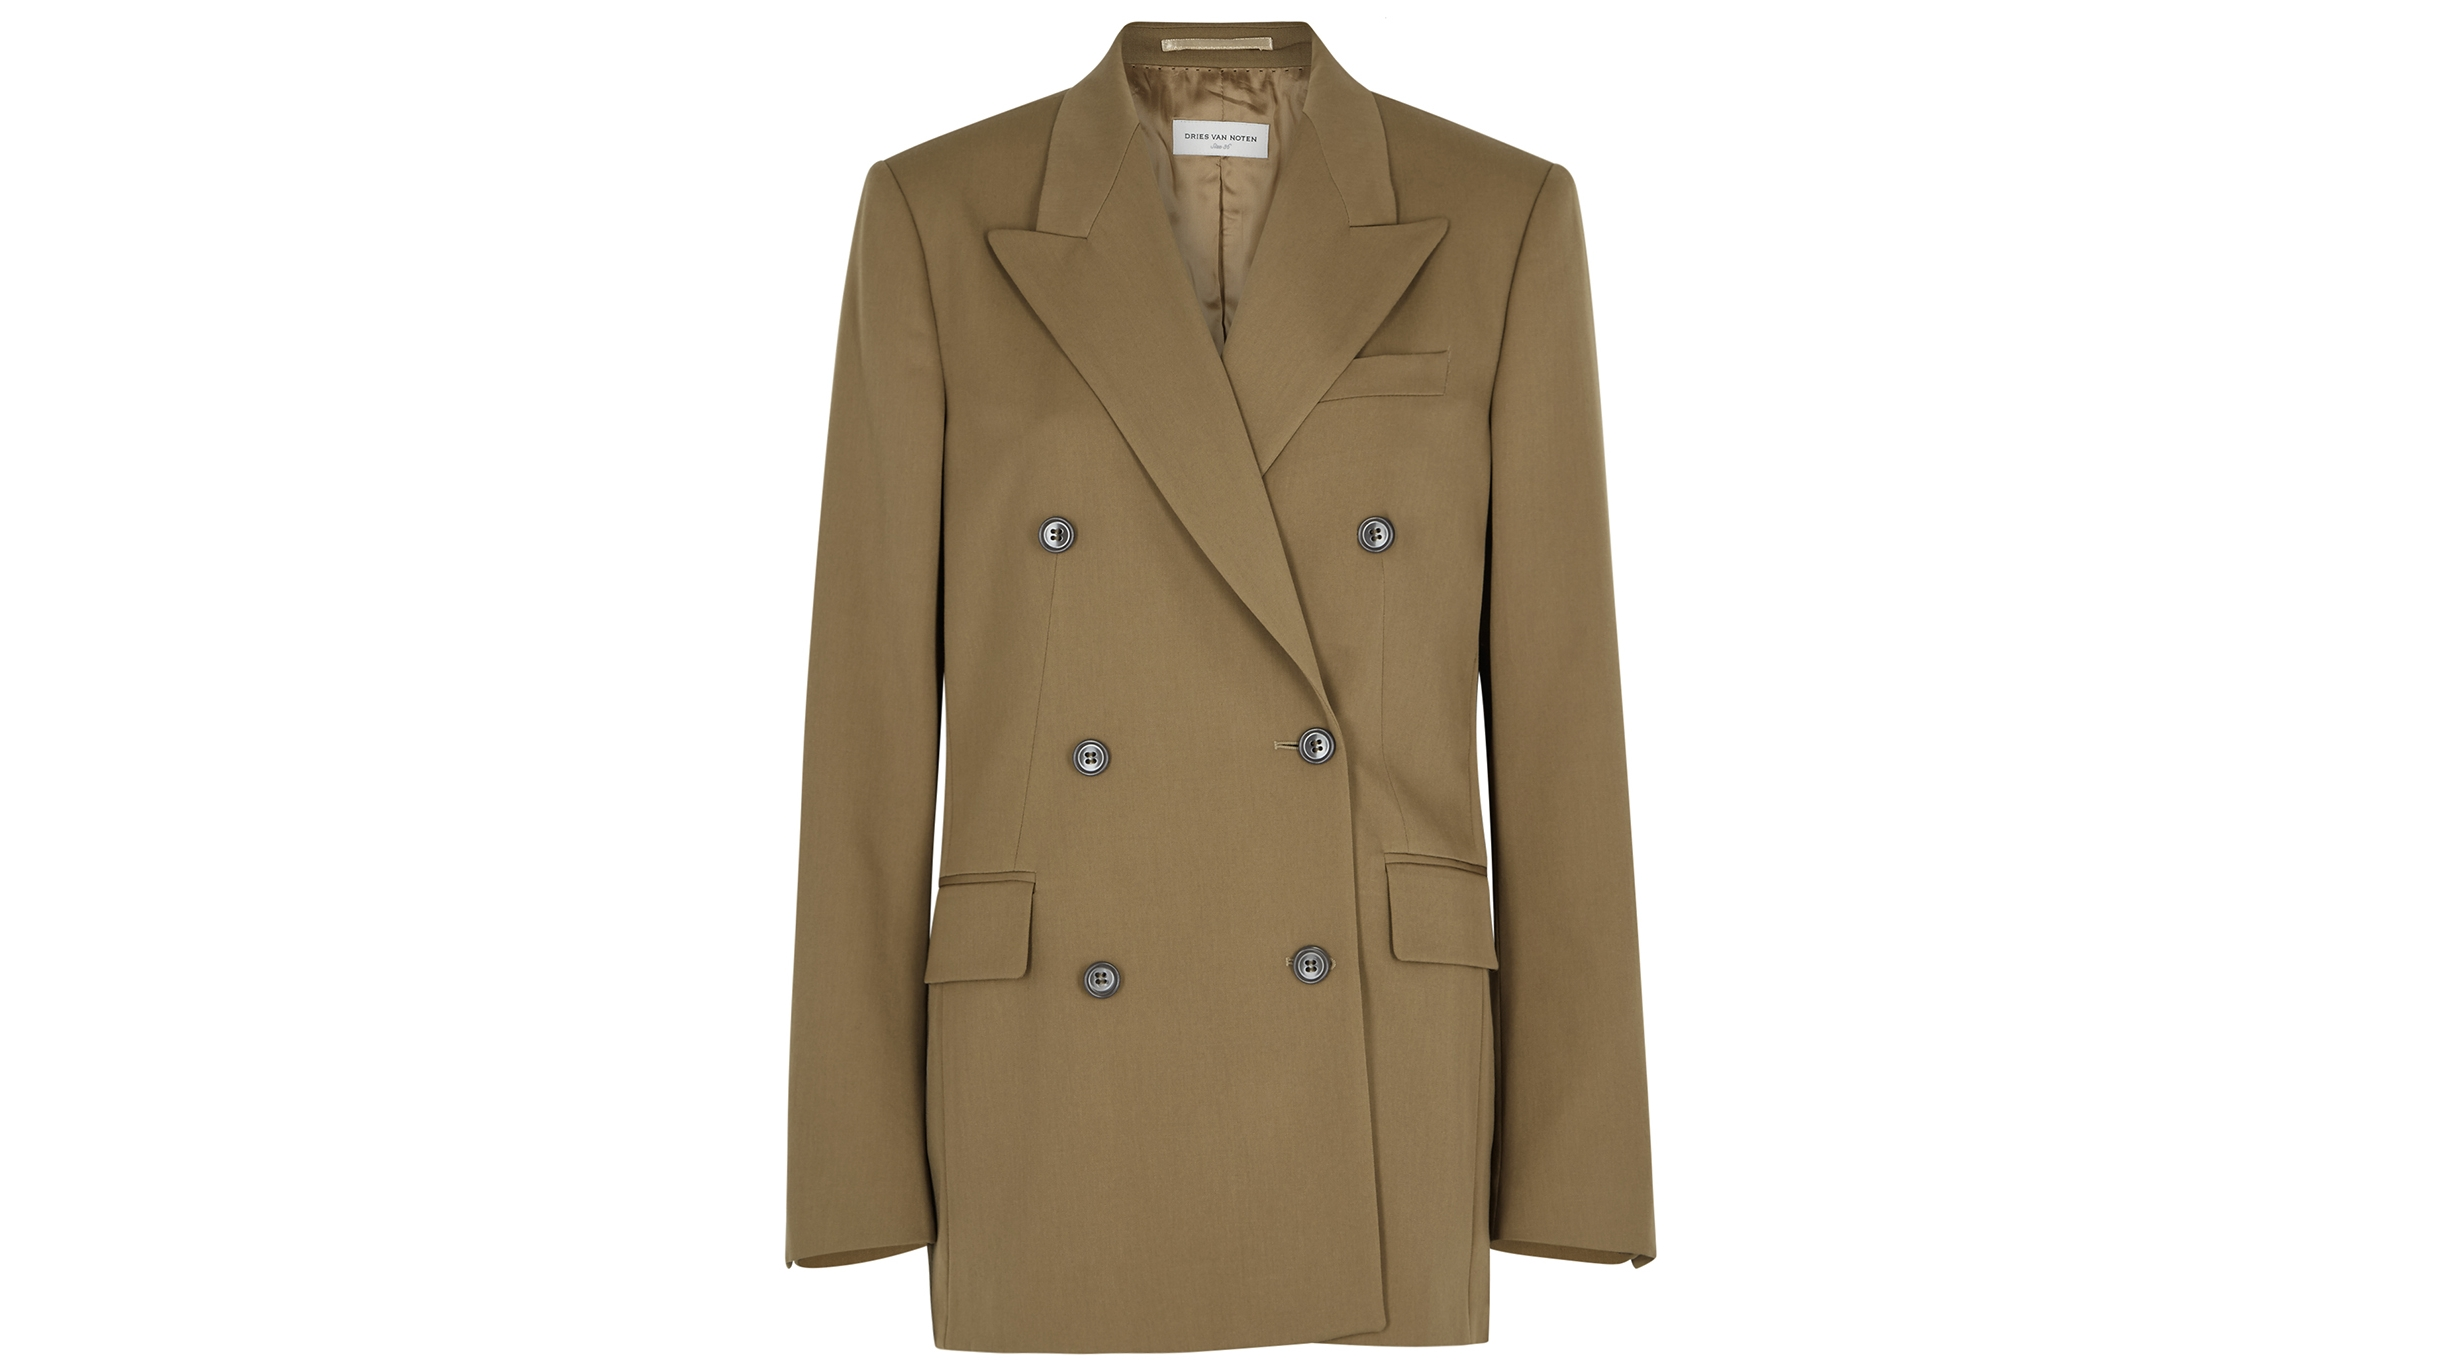 12b44ad2fa Bovan olive wool blazer. £885.00. Formal mixed with flashes of flamboyance  is the vibe at Dries Van Noten ...